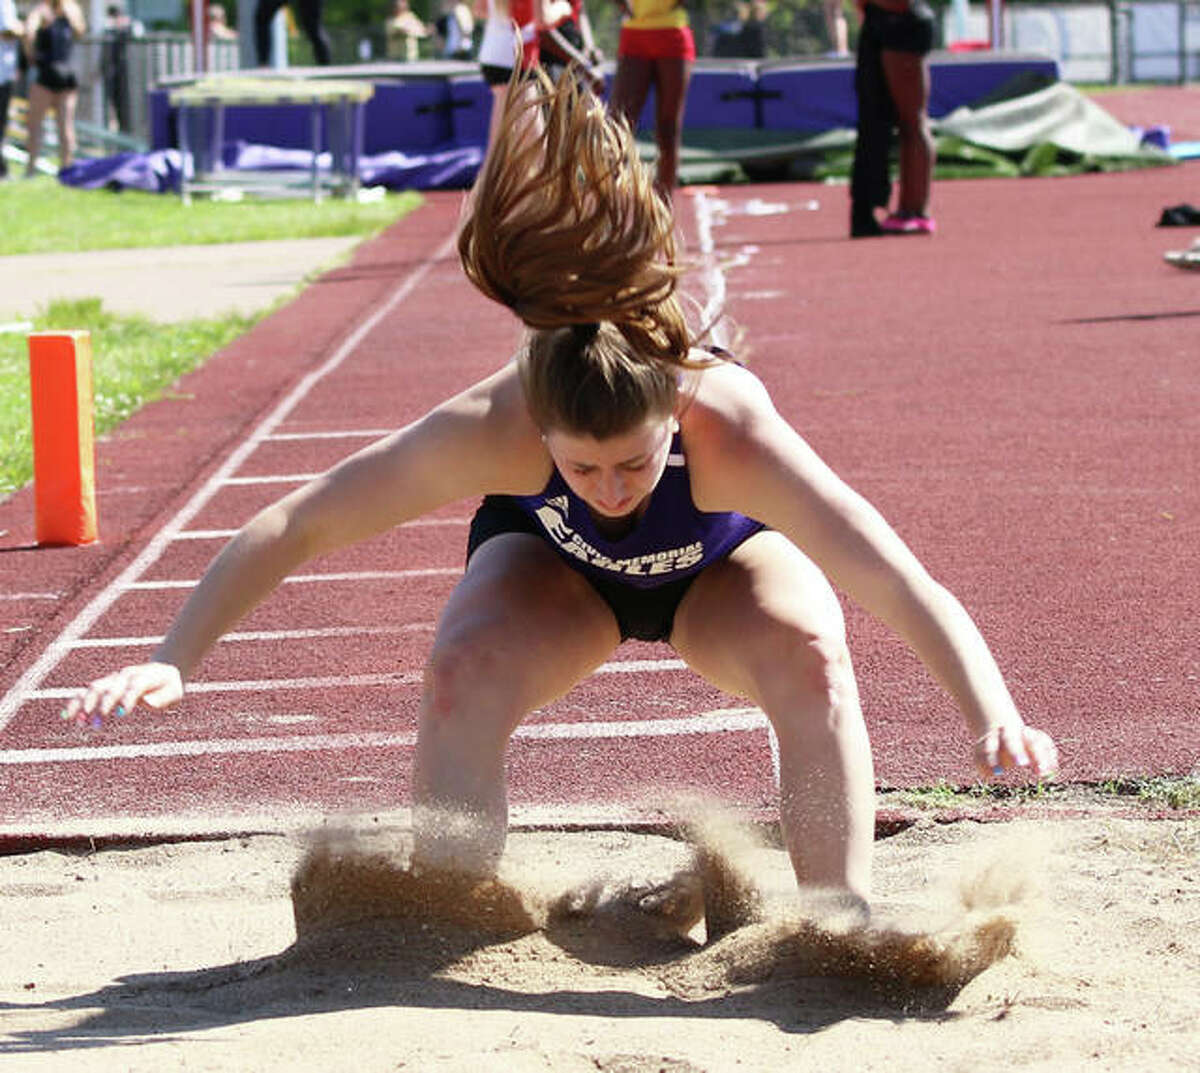 CM grad Jackie Woelfel, shown during long jump competition for the Eagles track team, signed with Kansas Jayhawks rowing earlier this year and will begin fall workouts, along with classes, Monday in Lawrence.